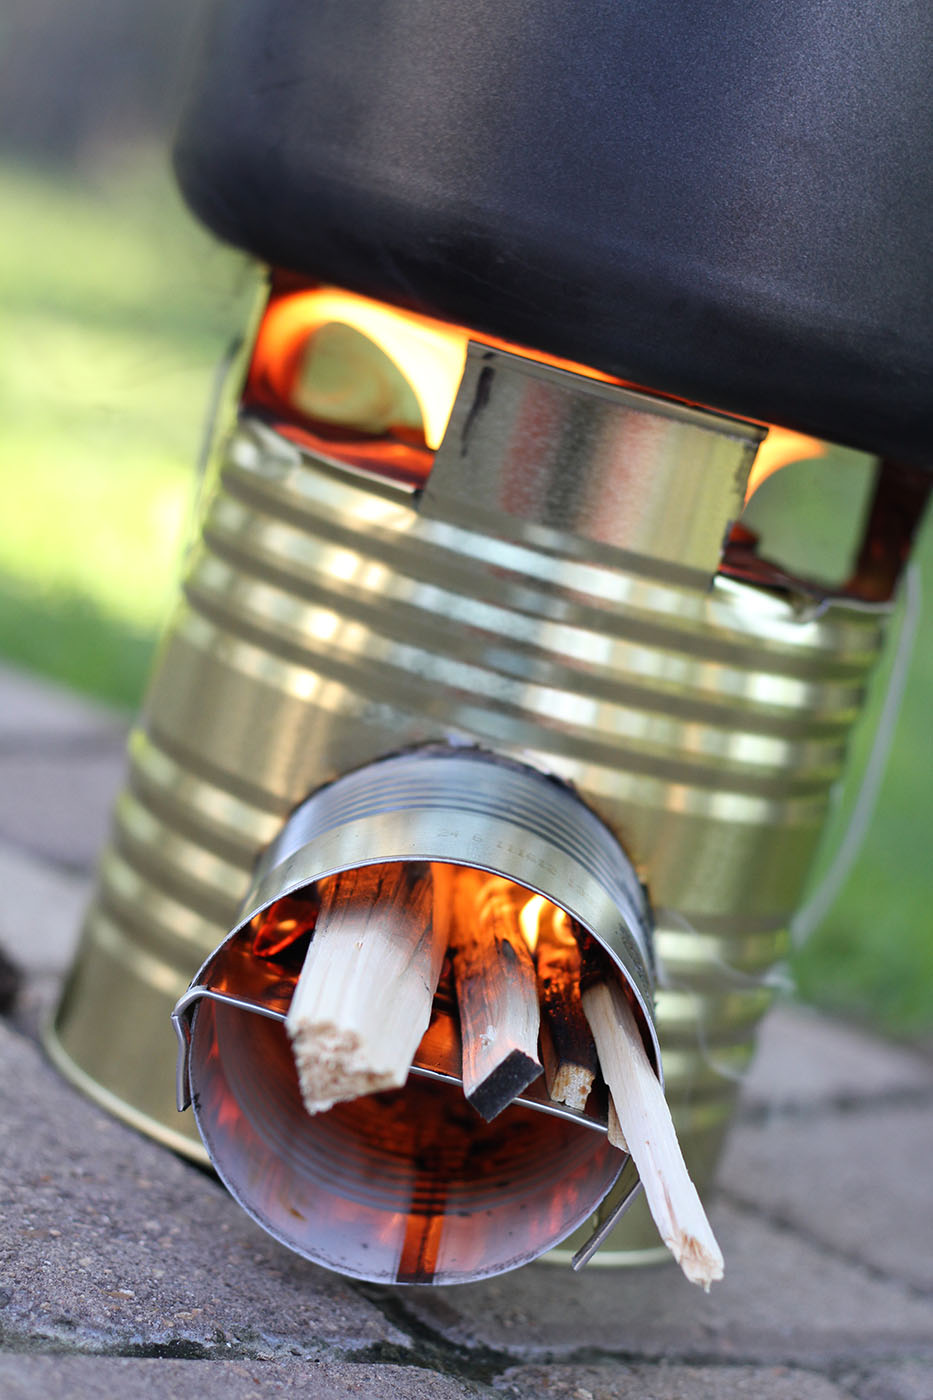 A Rocket Stove Uses High Temperature Combustion Chamber Inside An Insulated Chimney To Efficiently Burn Small Diameter Pieces Of Wood